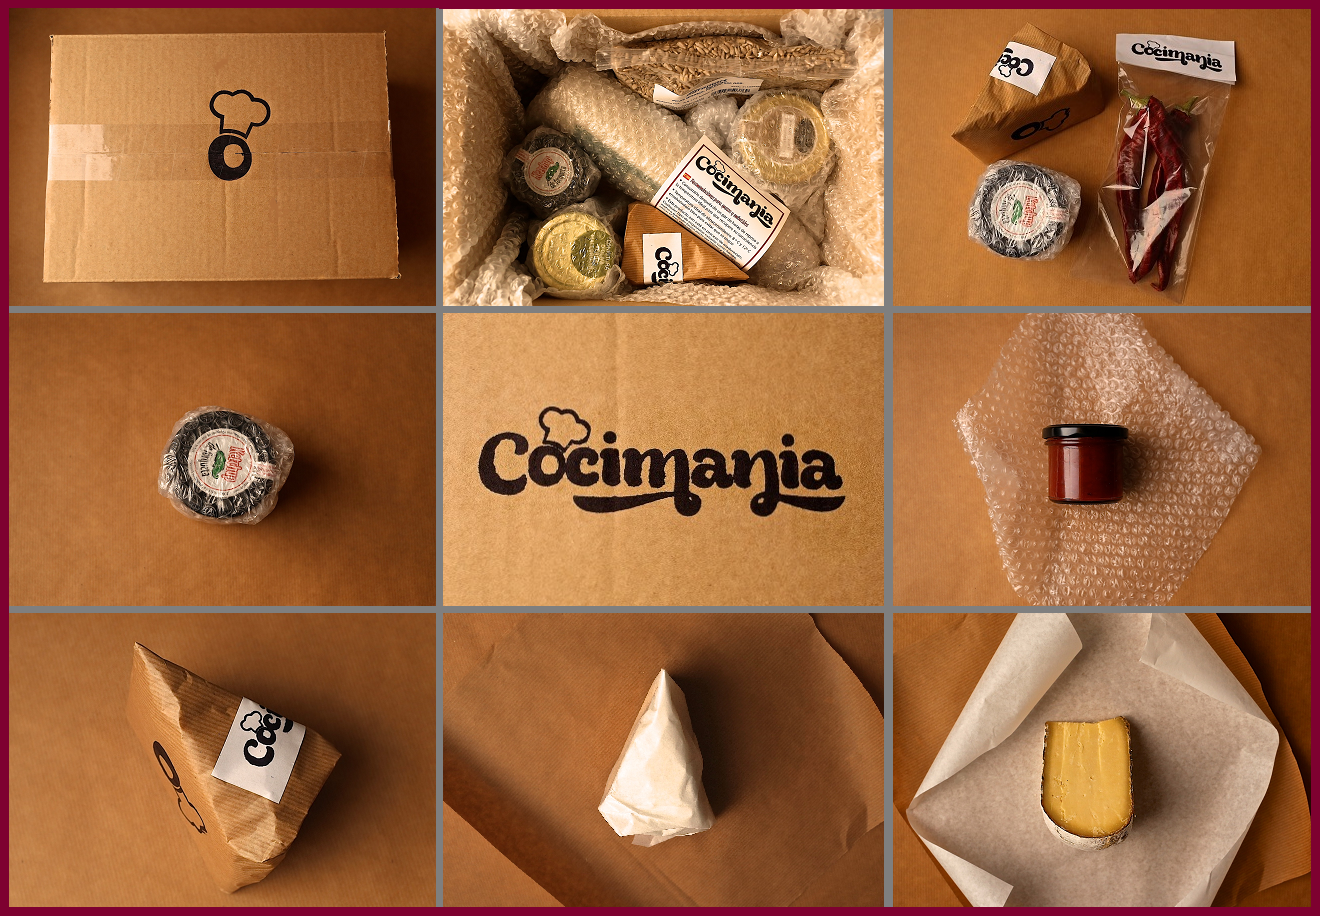 packaging-order-cocimania